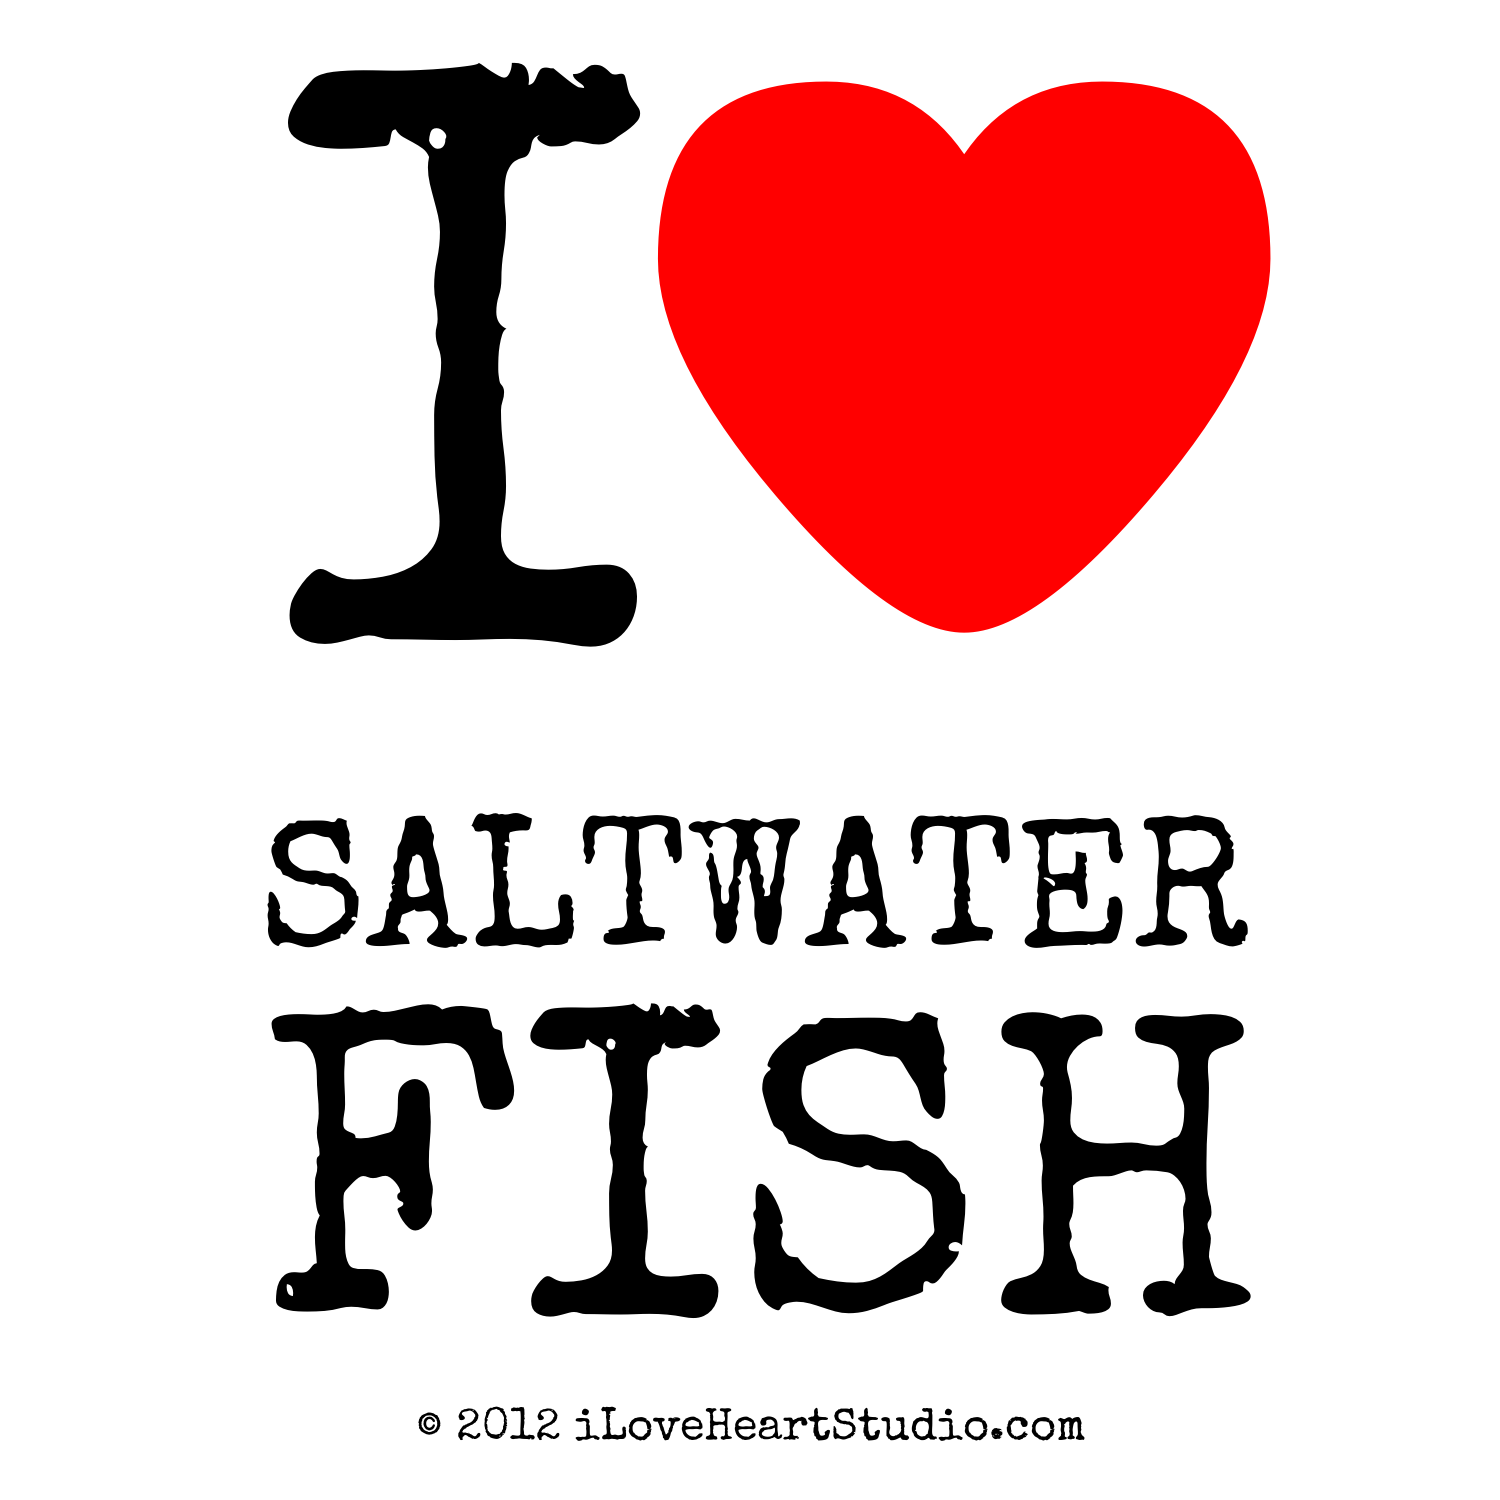 I Love Heart Saltwater Fish Design On Poster Mug T Shirt And Many